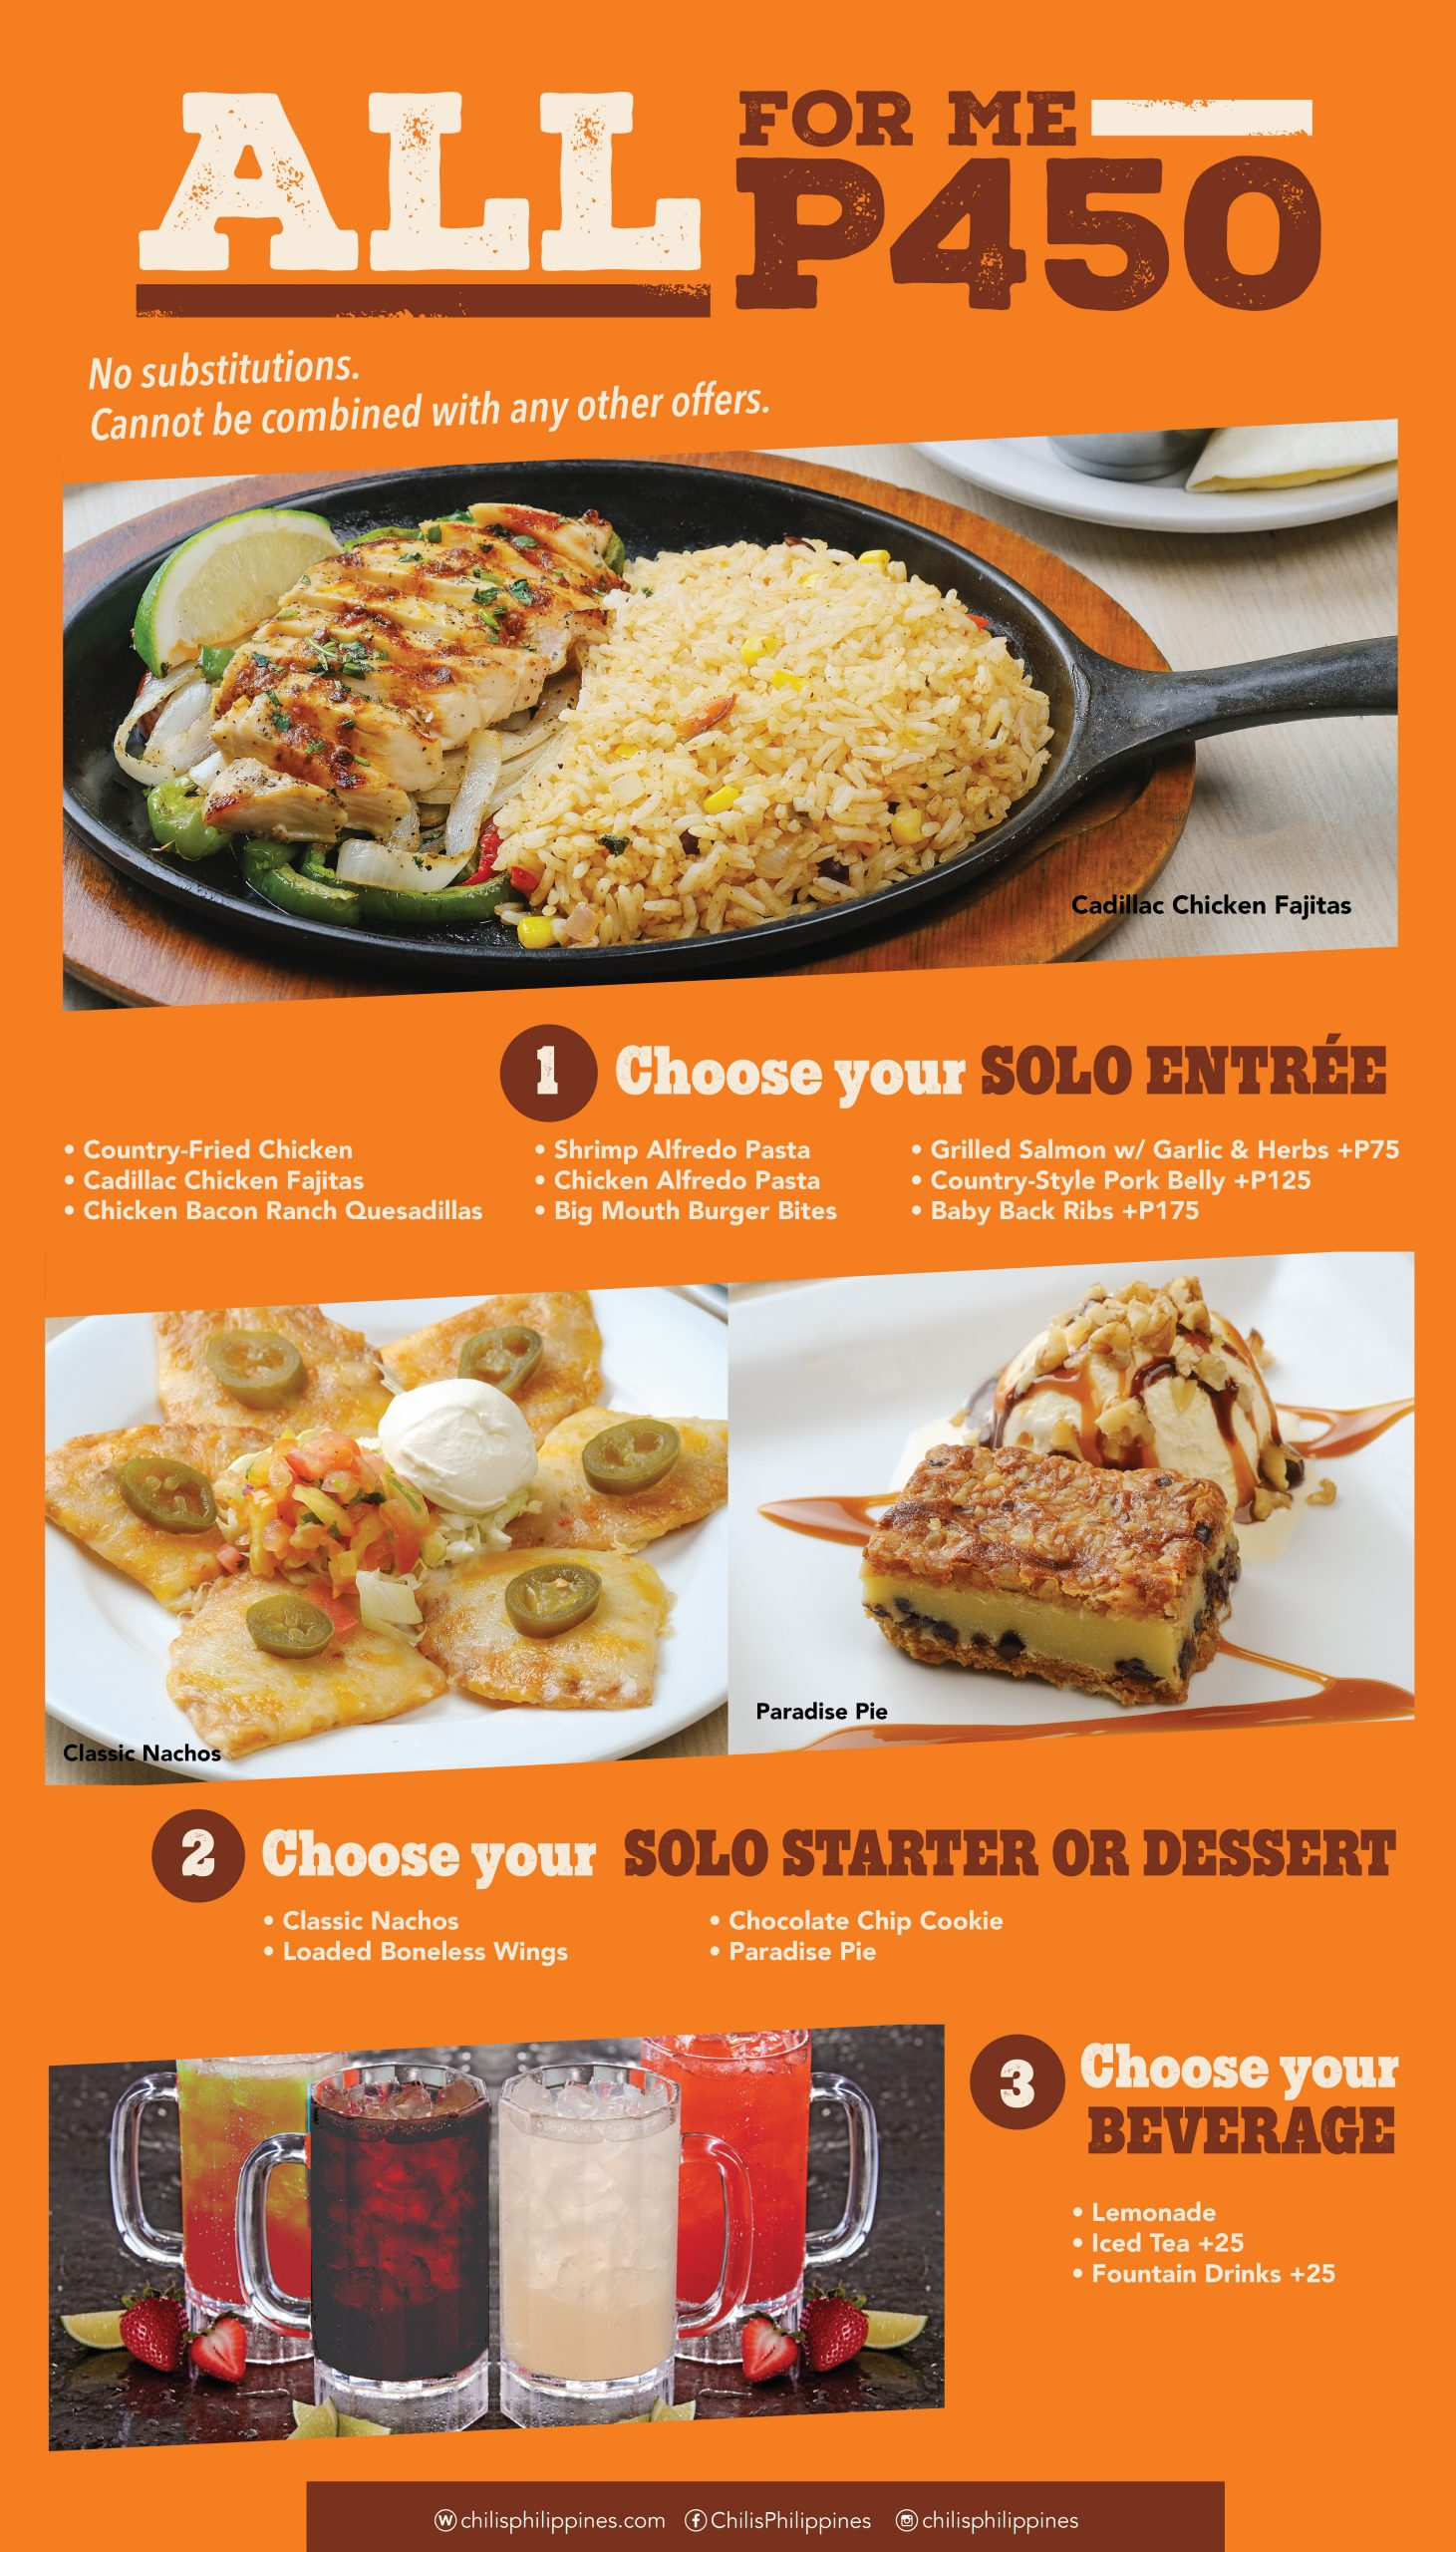 Chili's All For Me Menu